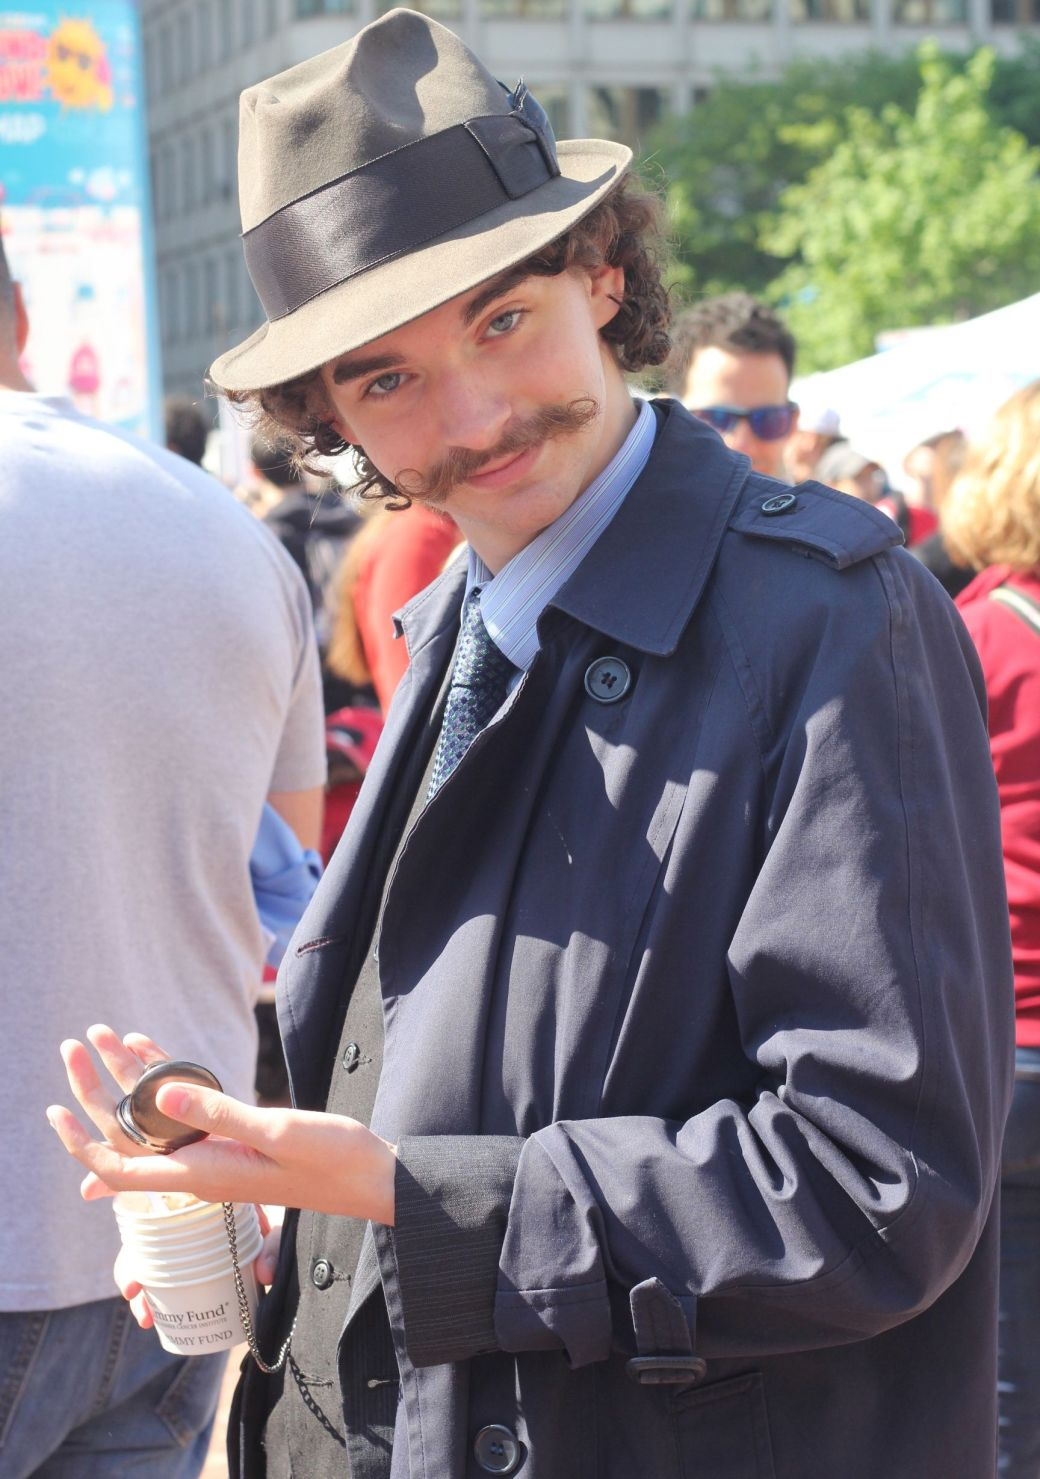 boston scooper bowl man in detective outfit 3